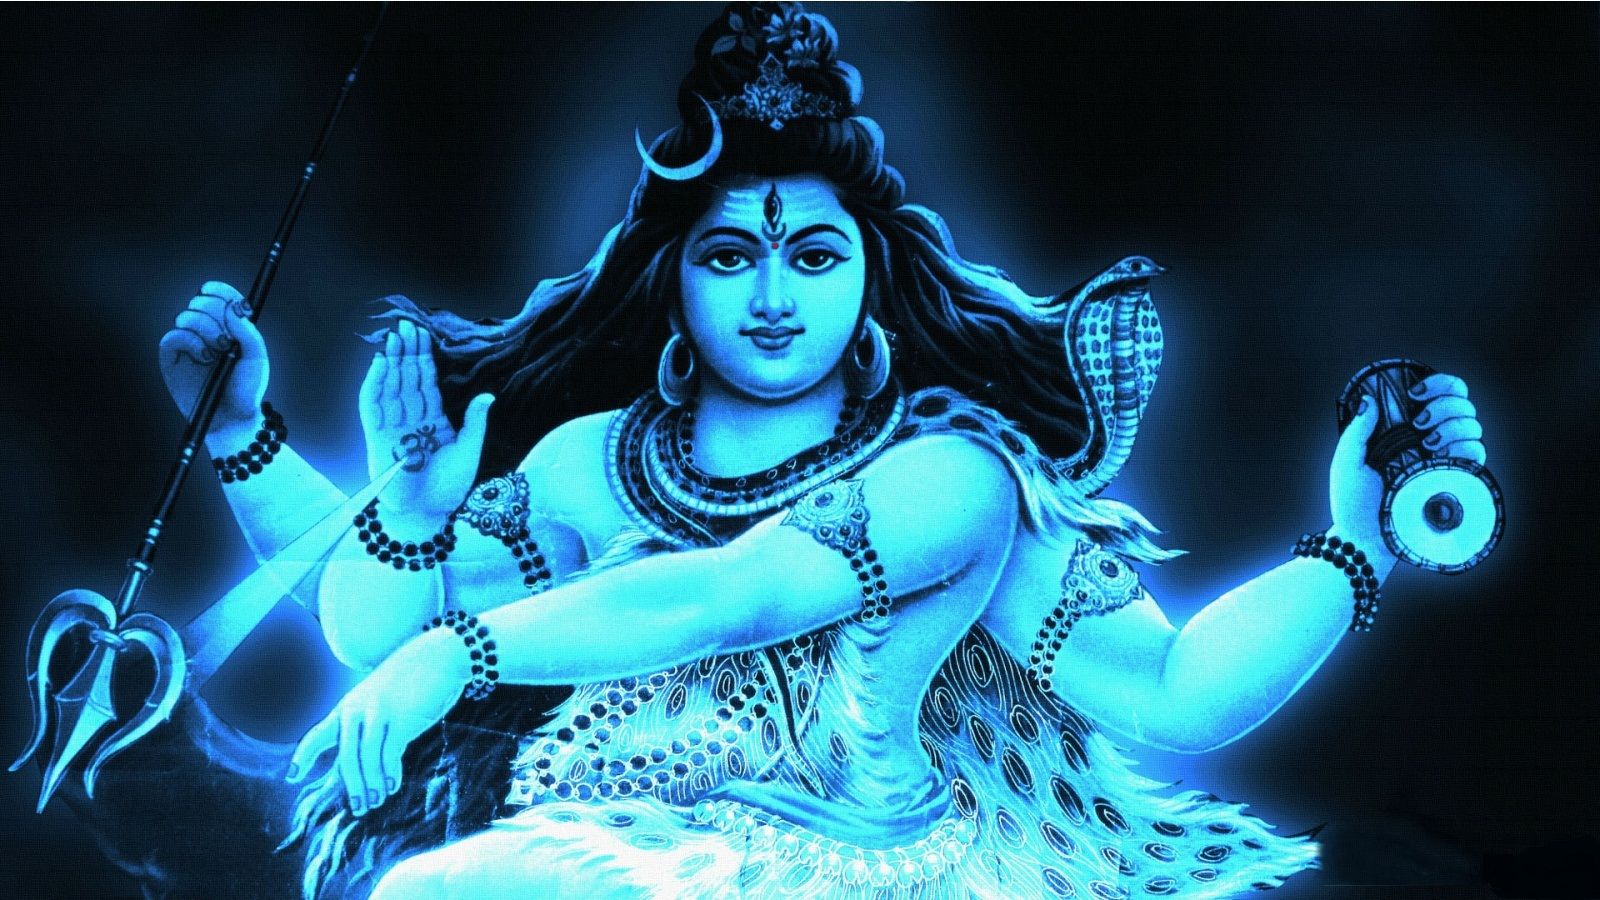 Shiva Wallpaper Hindu Wallpaper Lord Shiva Ji Wallpapers: Lord Shiva Wallpapers Hd Free Download For Desktop